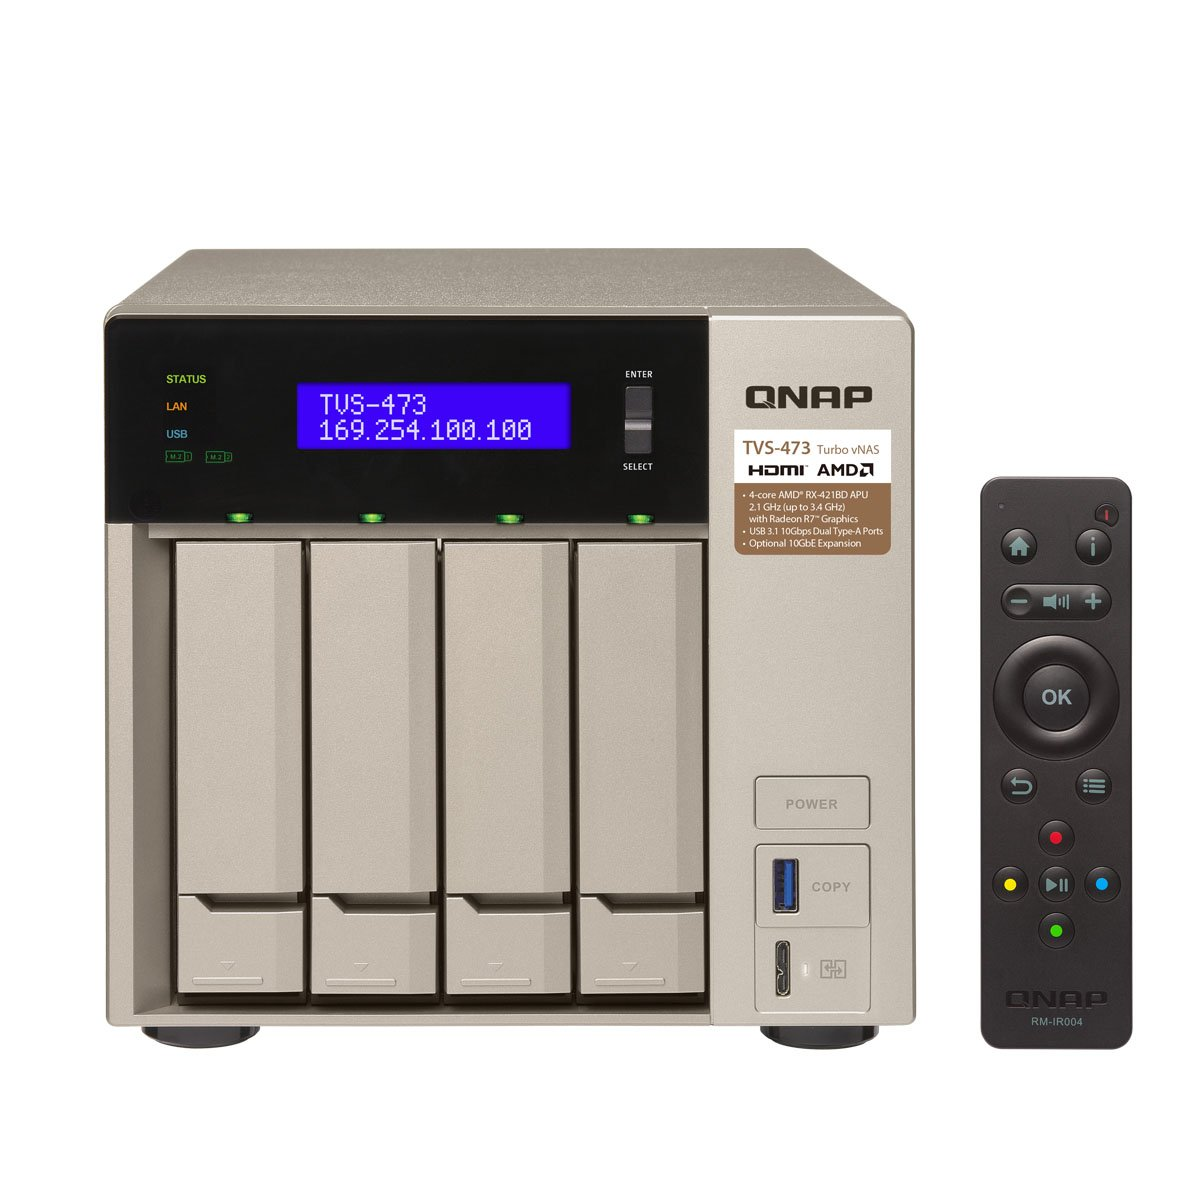 Amazon.com: Qnap TVS-473-8G-US 4-bay NAS/iSCSI IP-SAN, AMD R series  Quad-core 2.1GHz, 8GB RAM, 10G-ready: Computers & Accessories